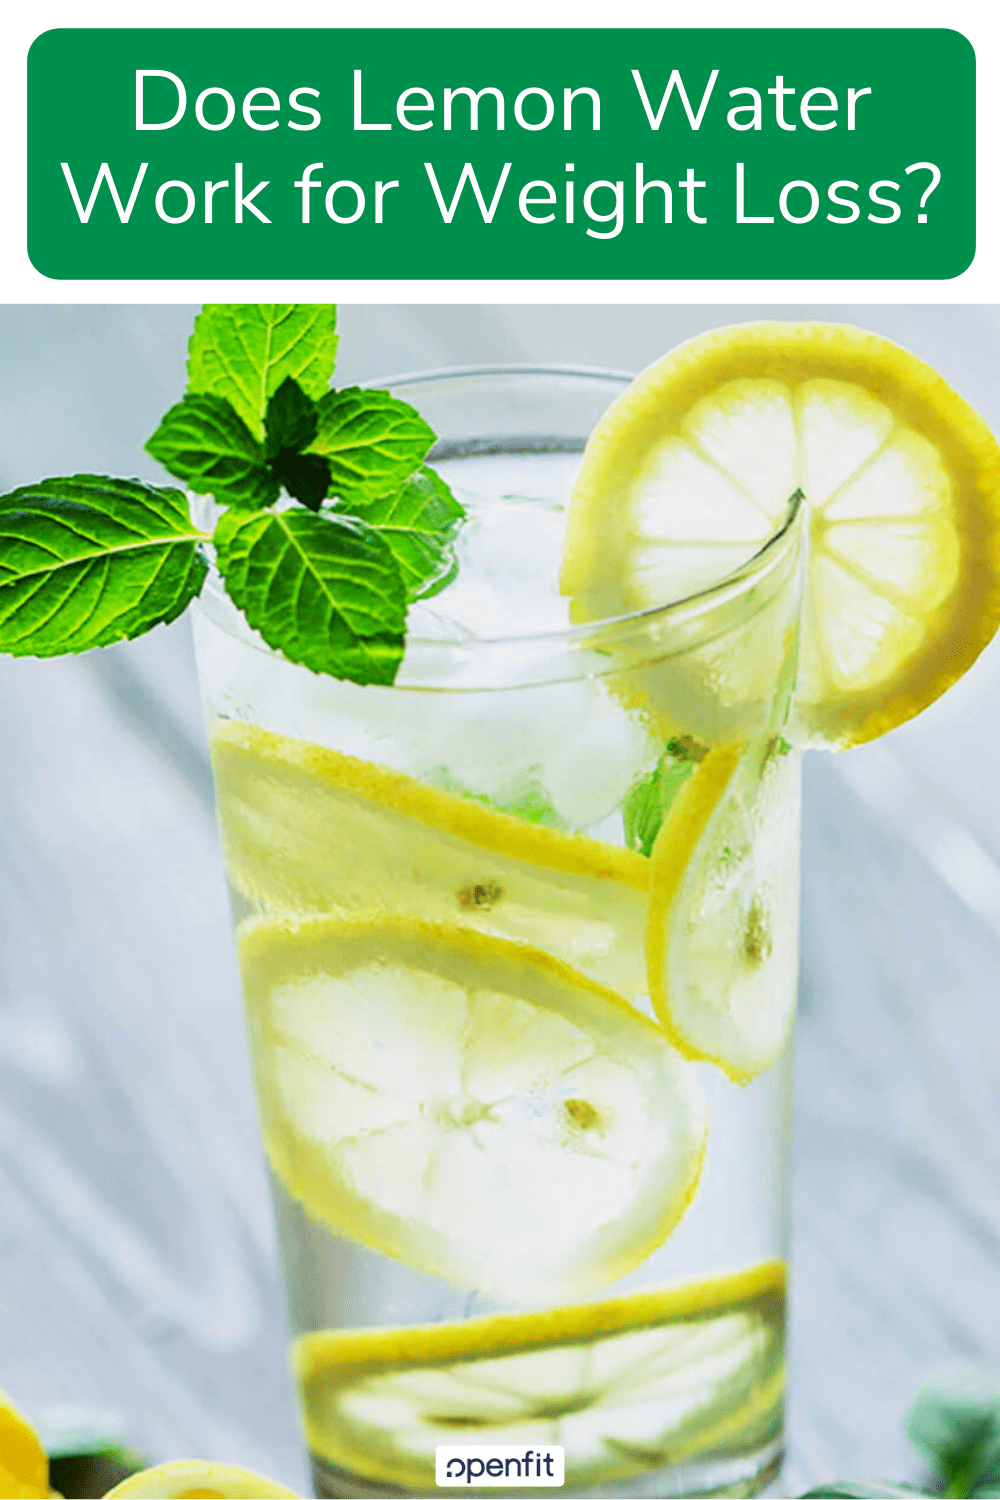 lemon water pin image